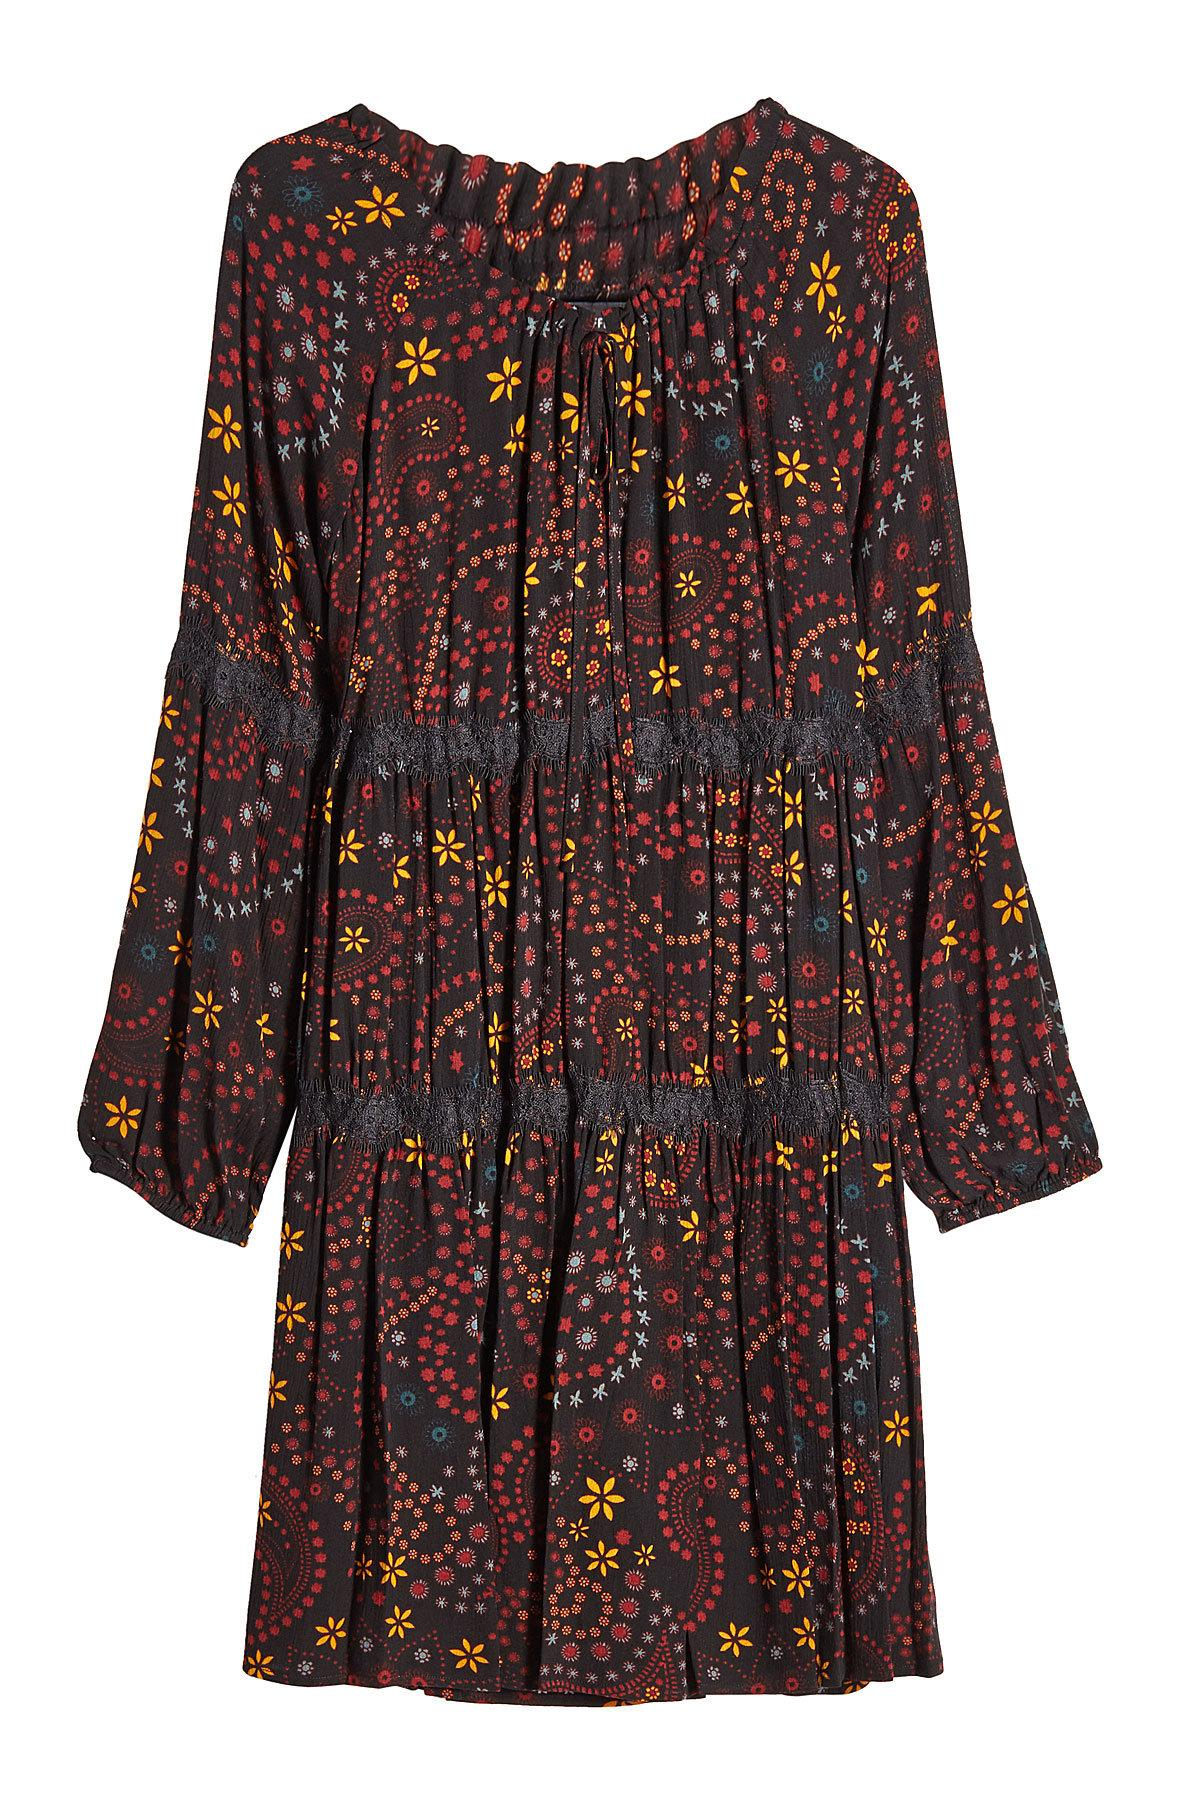 Steffen Schraut Printed Dress With Lace In Multicolored